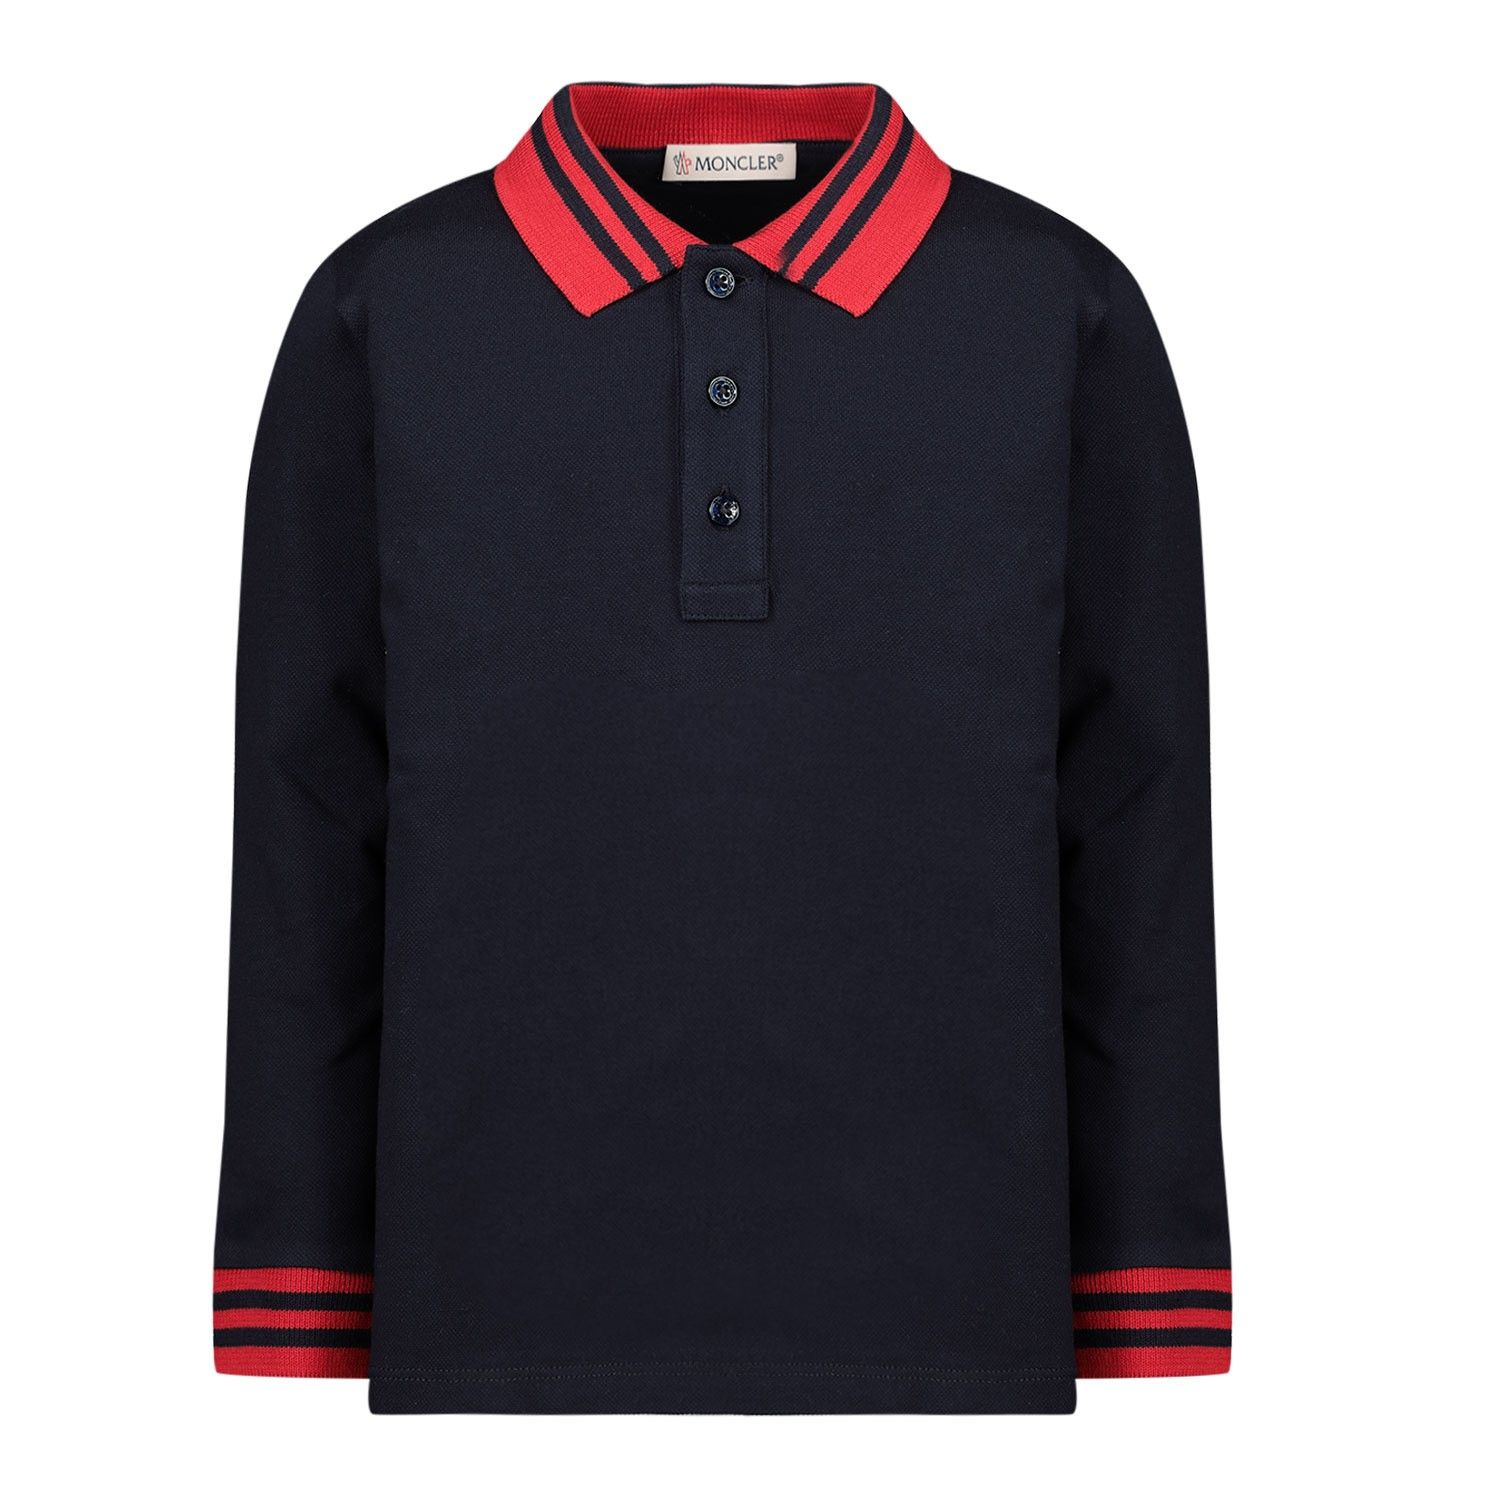 Picture of Moncler 8B70320 baby poloshirt navy